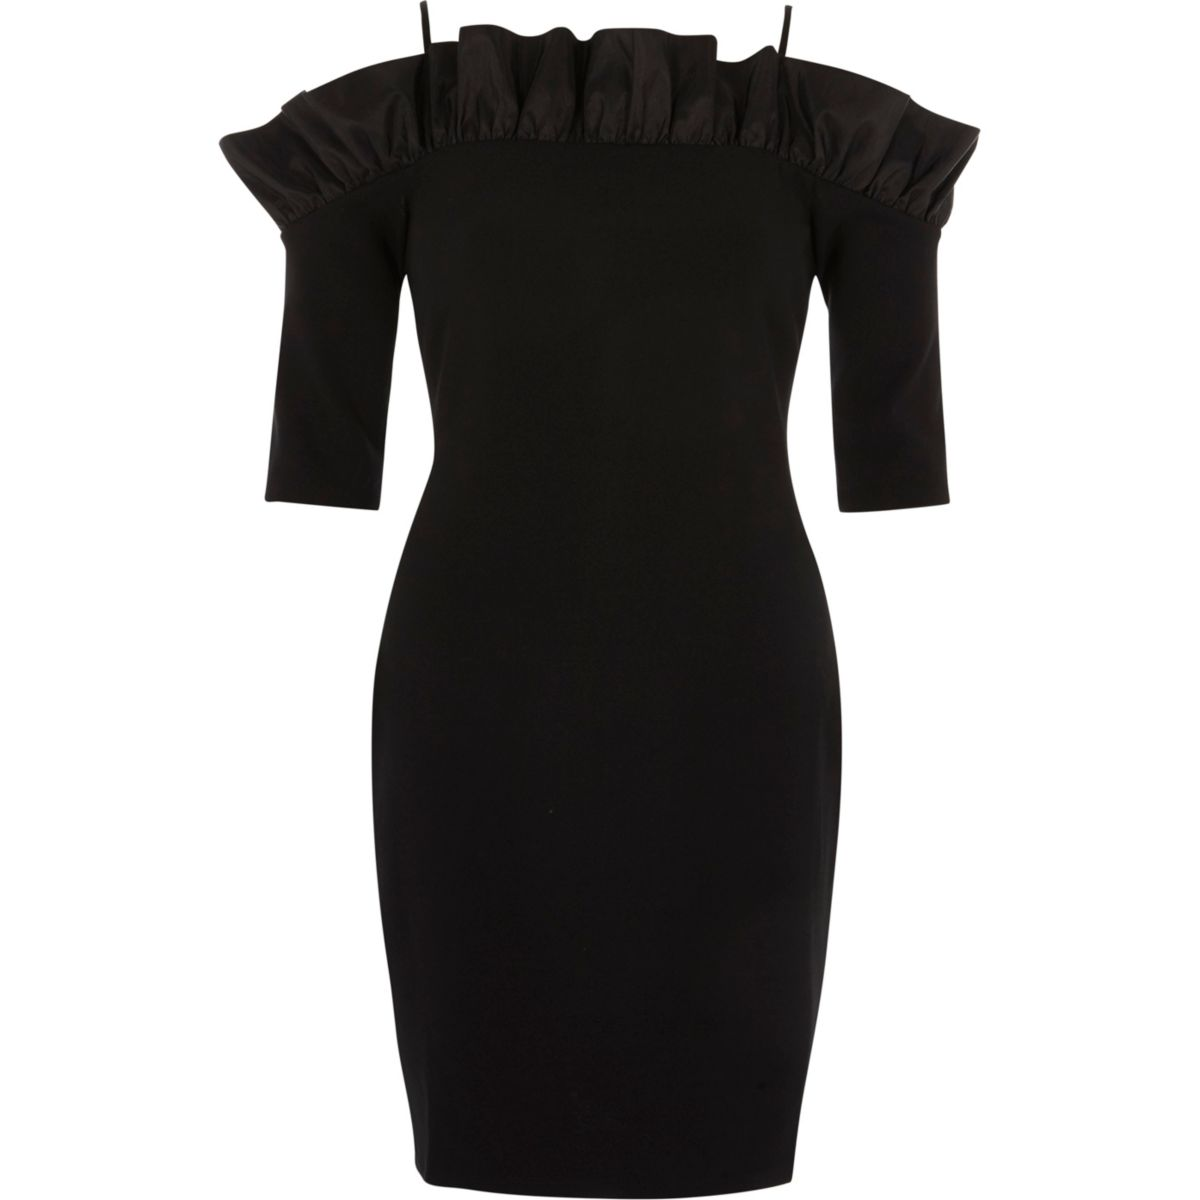 Black bardot frill bodycon mini dress